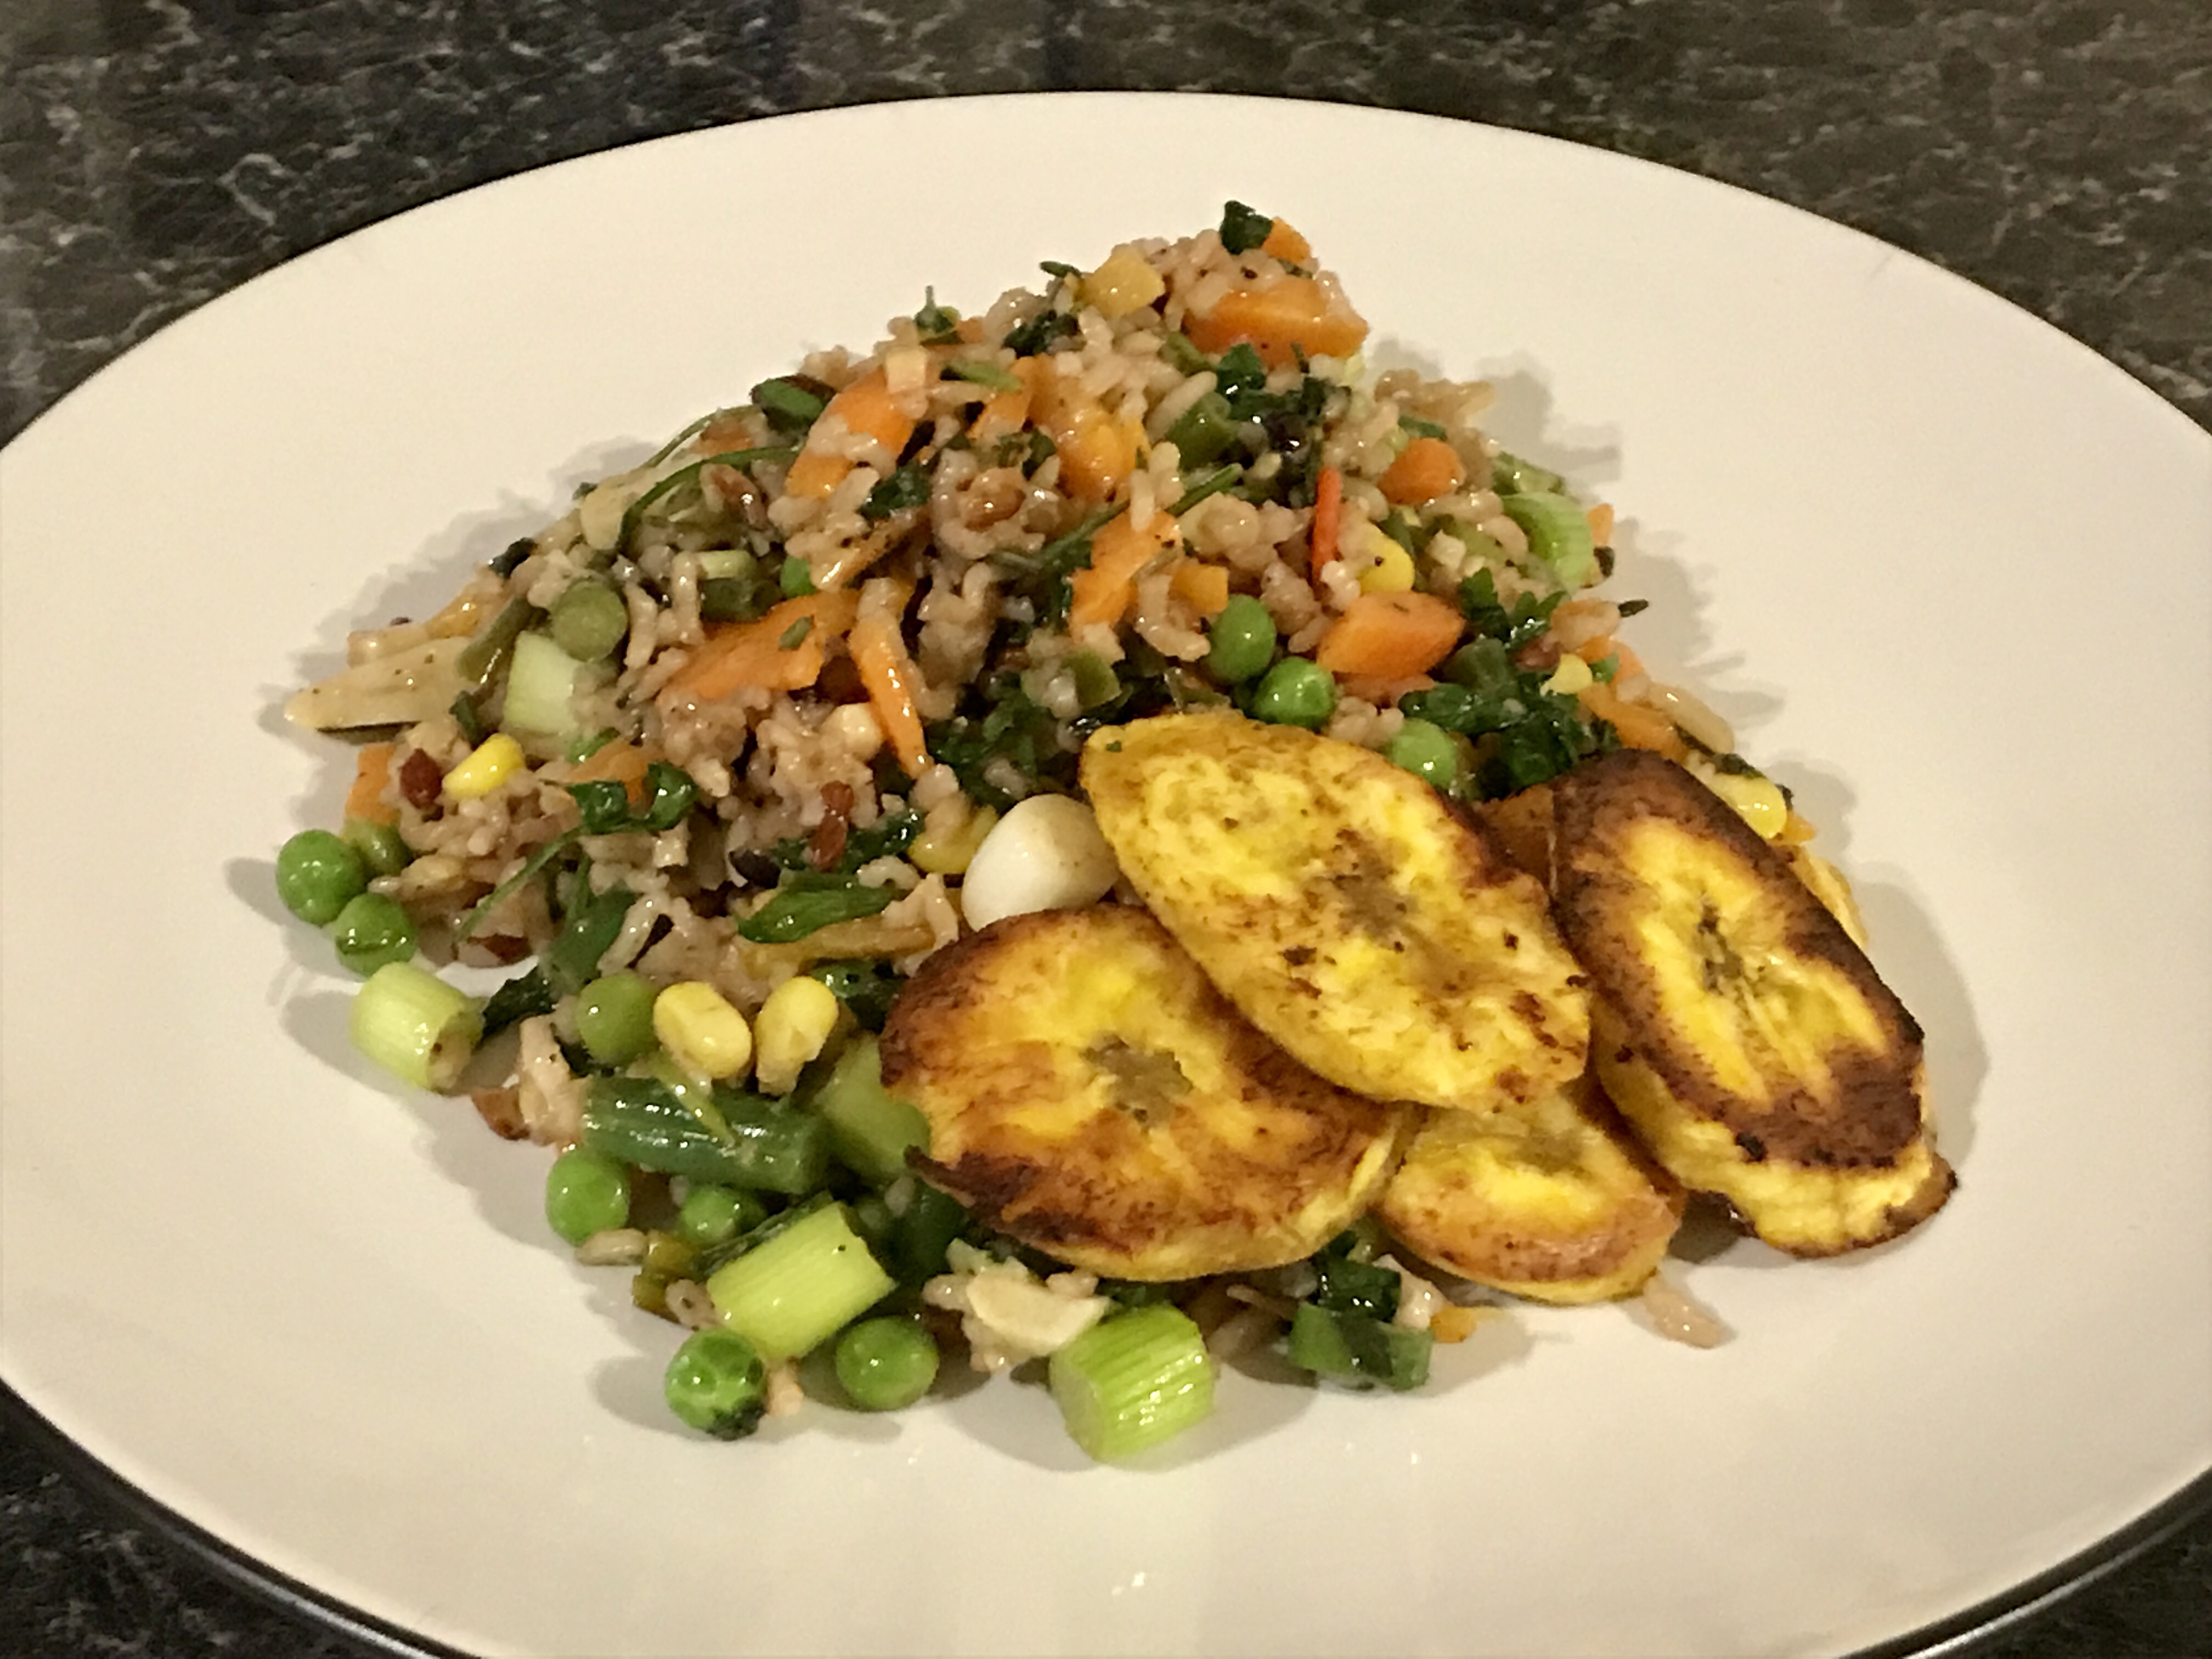 Latin American mixed rice salad with plantains